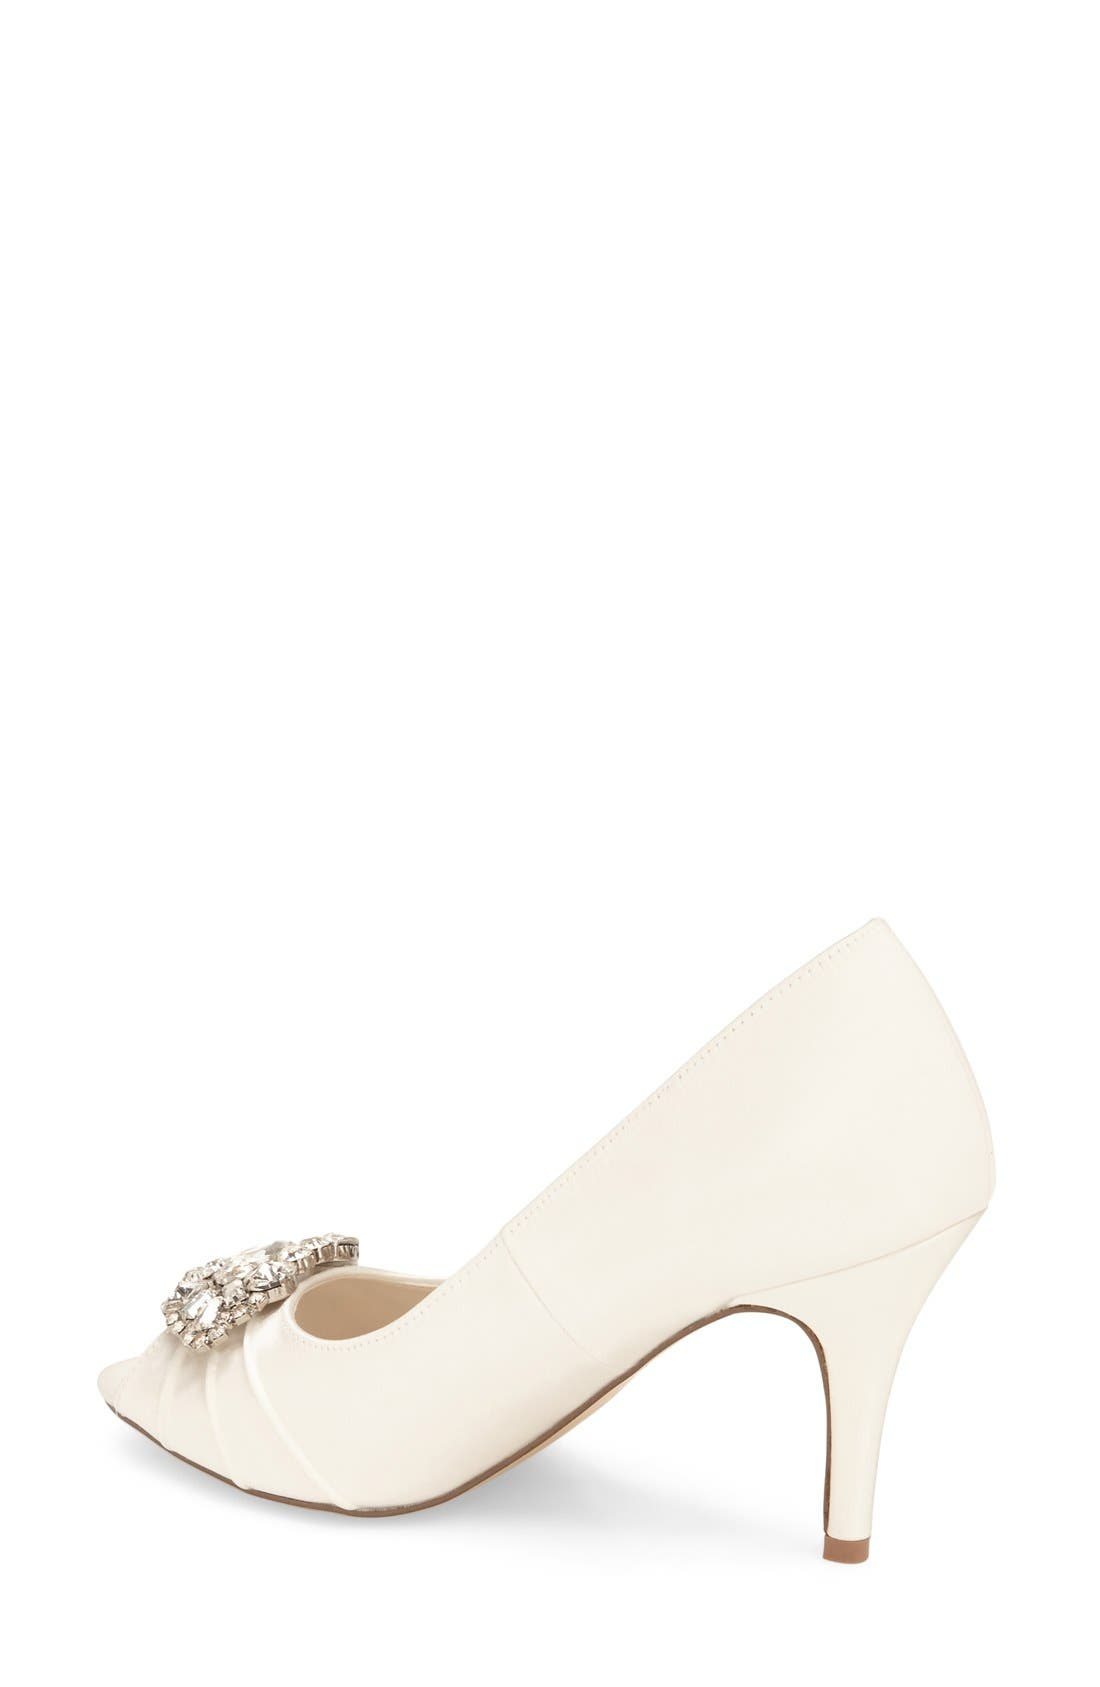 'Tender' Open Toe Pump,                             Alternate thumbnail 6, color,                             IVORY SATIN